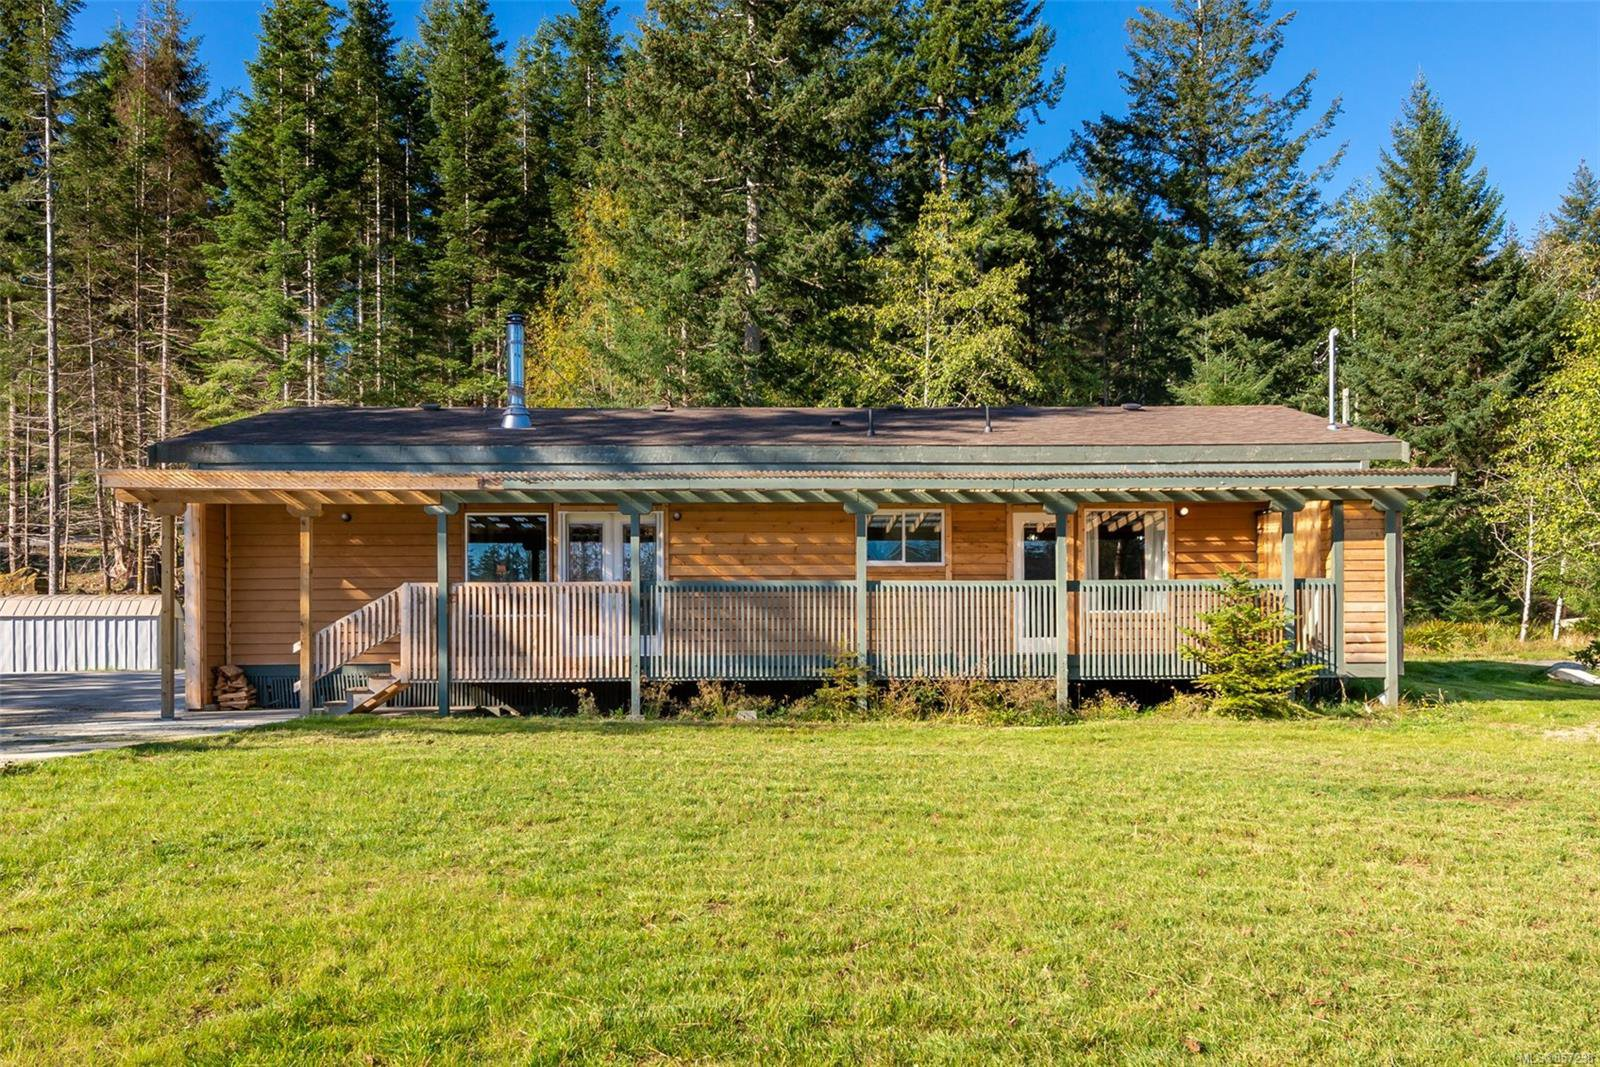 Main Photo: 1396 West Rd in : Isl Quadra Island House for sale (Islands)  : MLS®# 857238